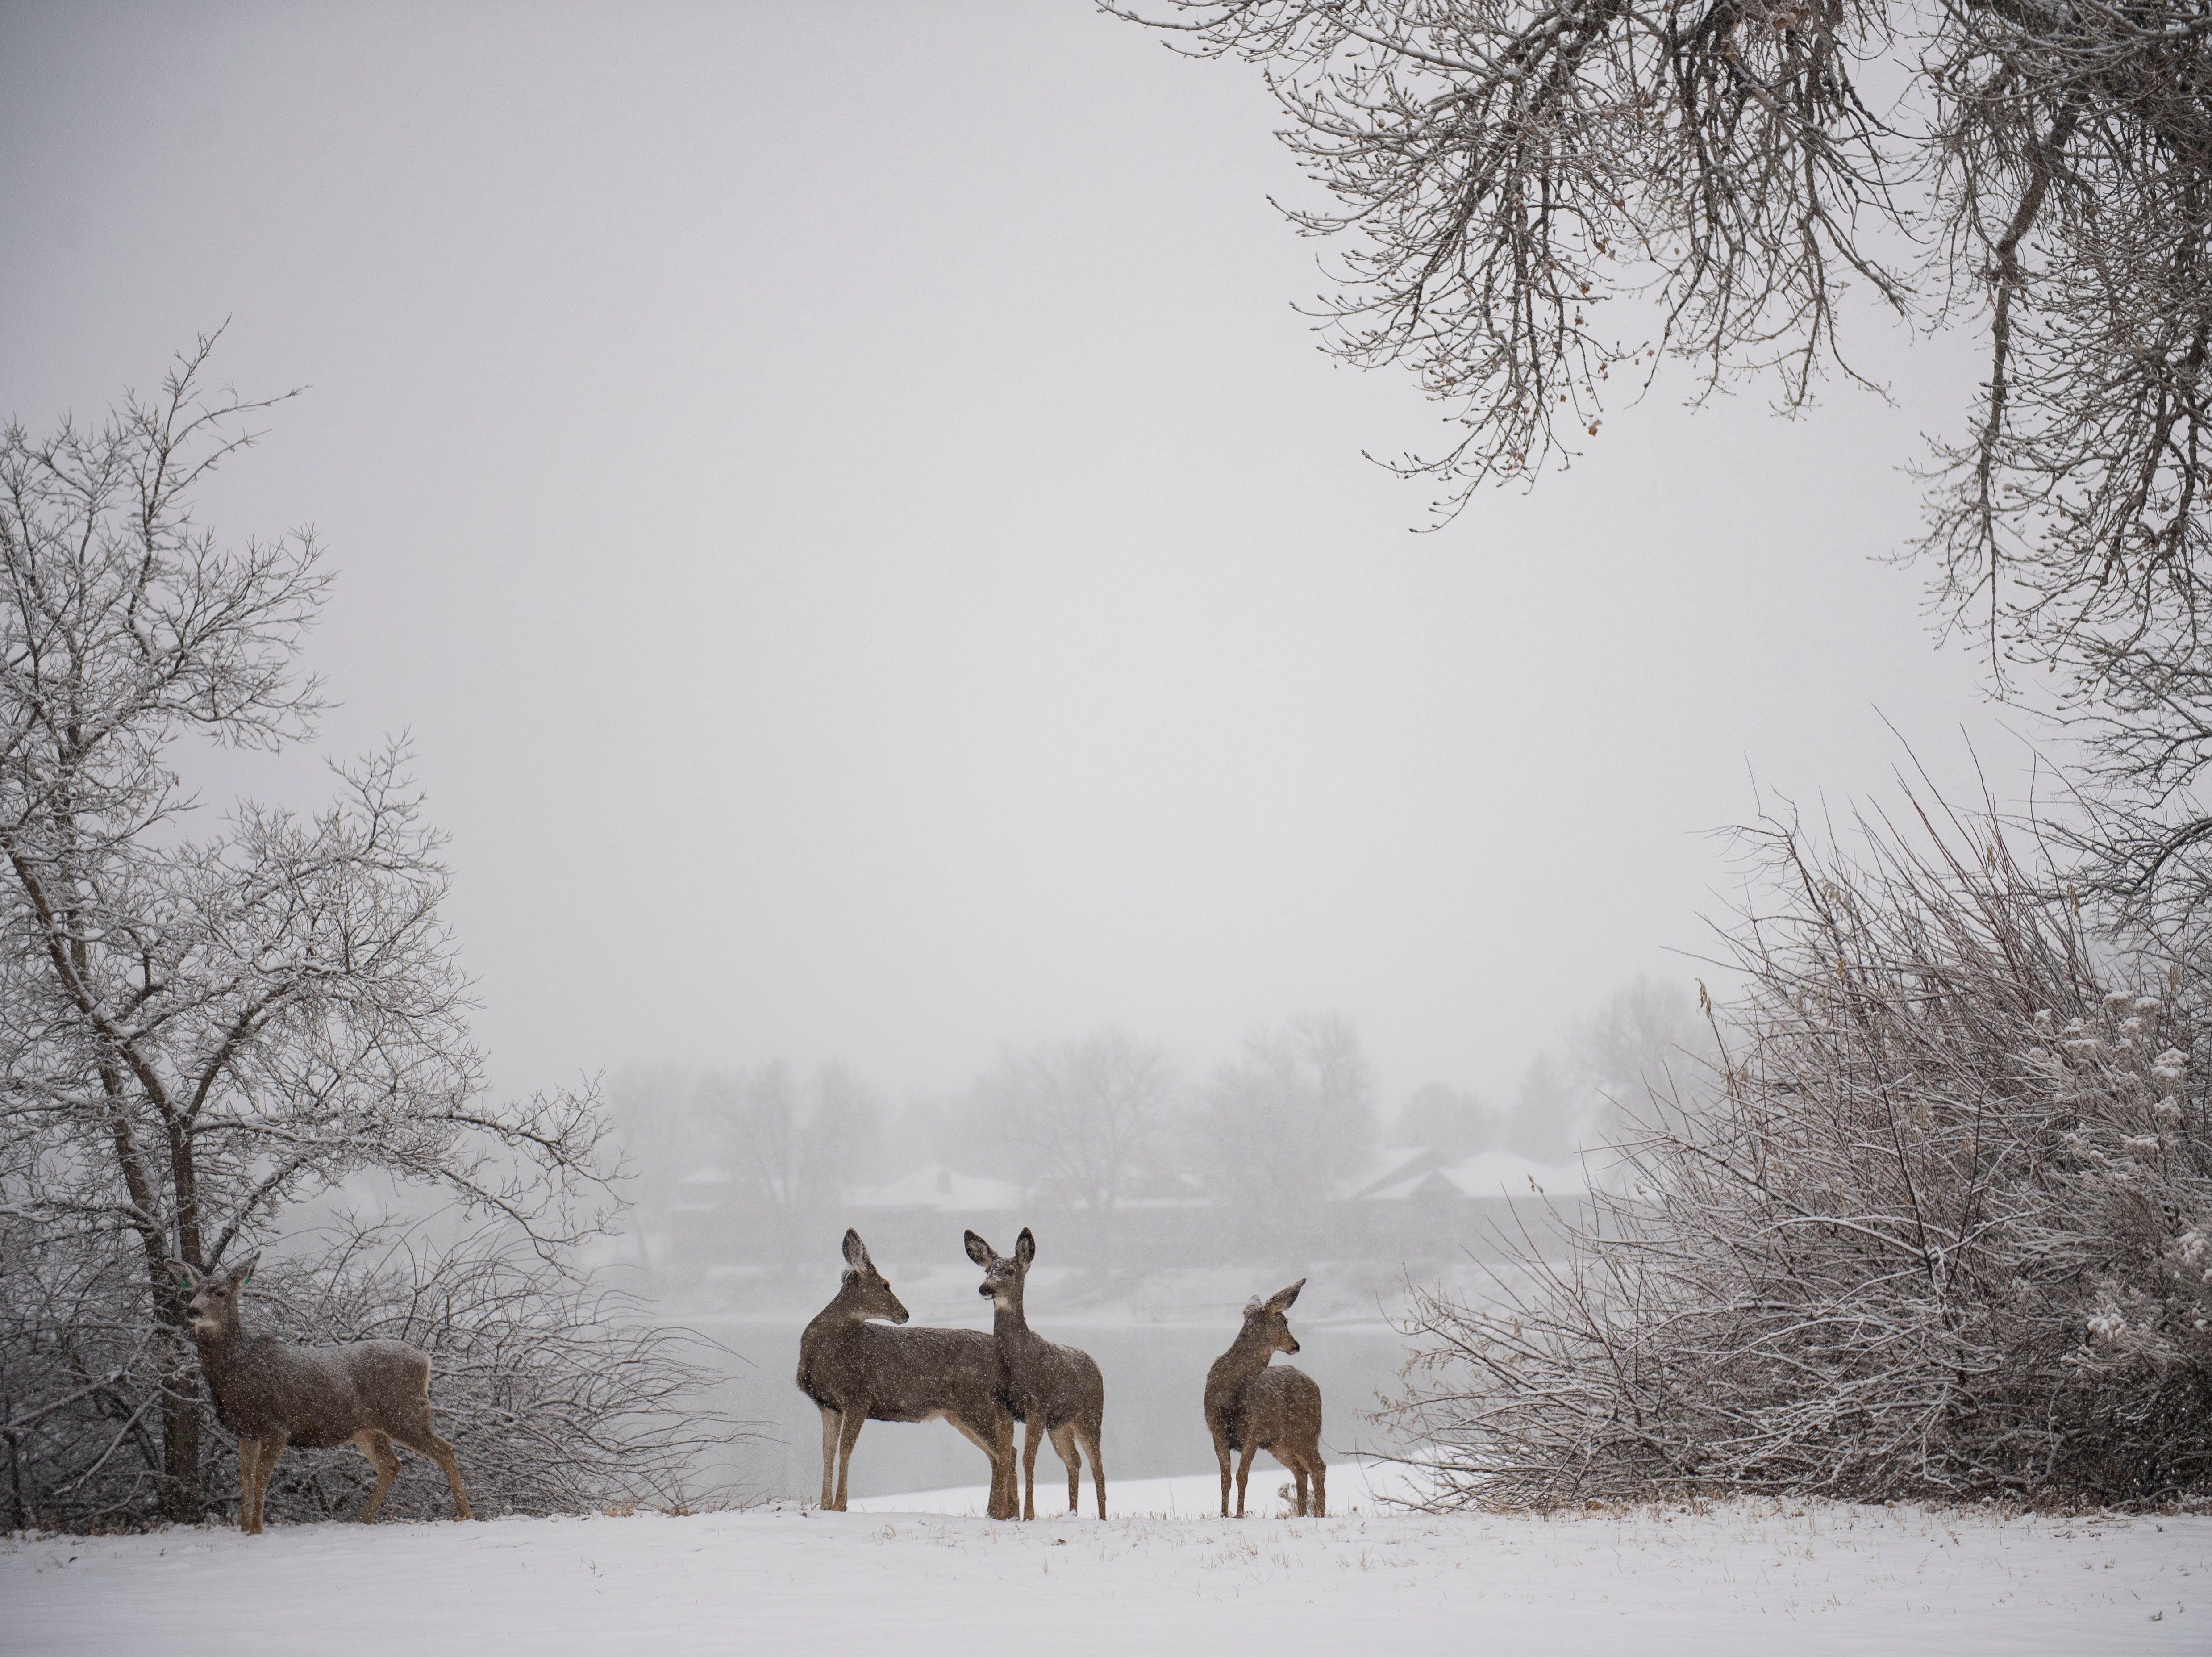 Mule deer wait to cross the street during a snowstorm on Wednesday, Feb. 6, 2019, near Terry Lake in Fort Collins, Colo.